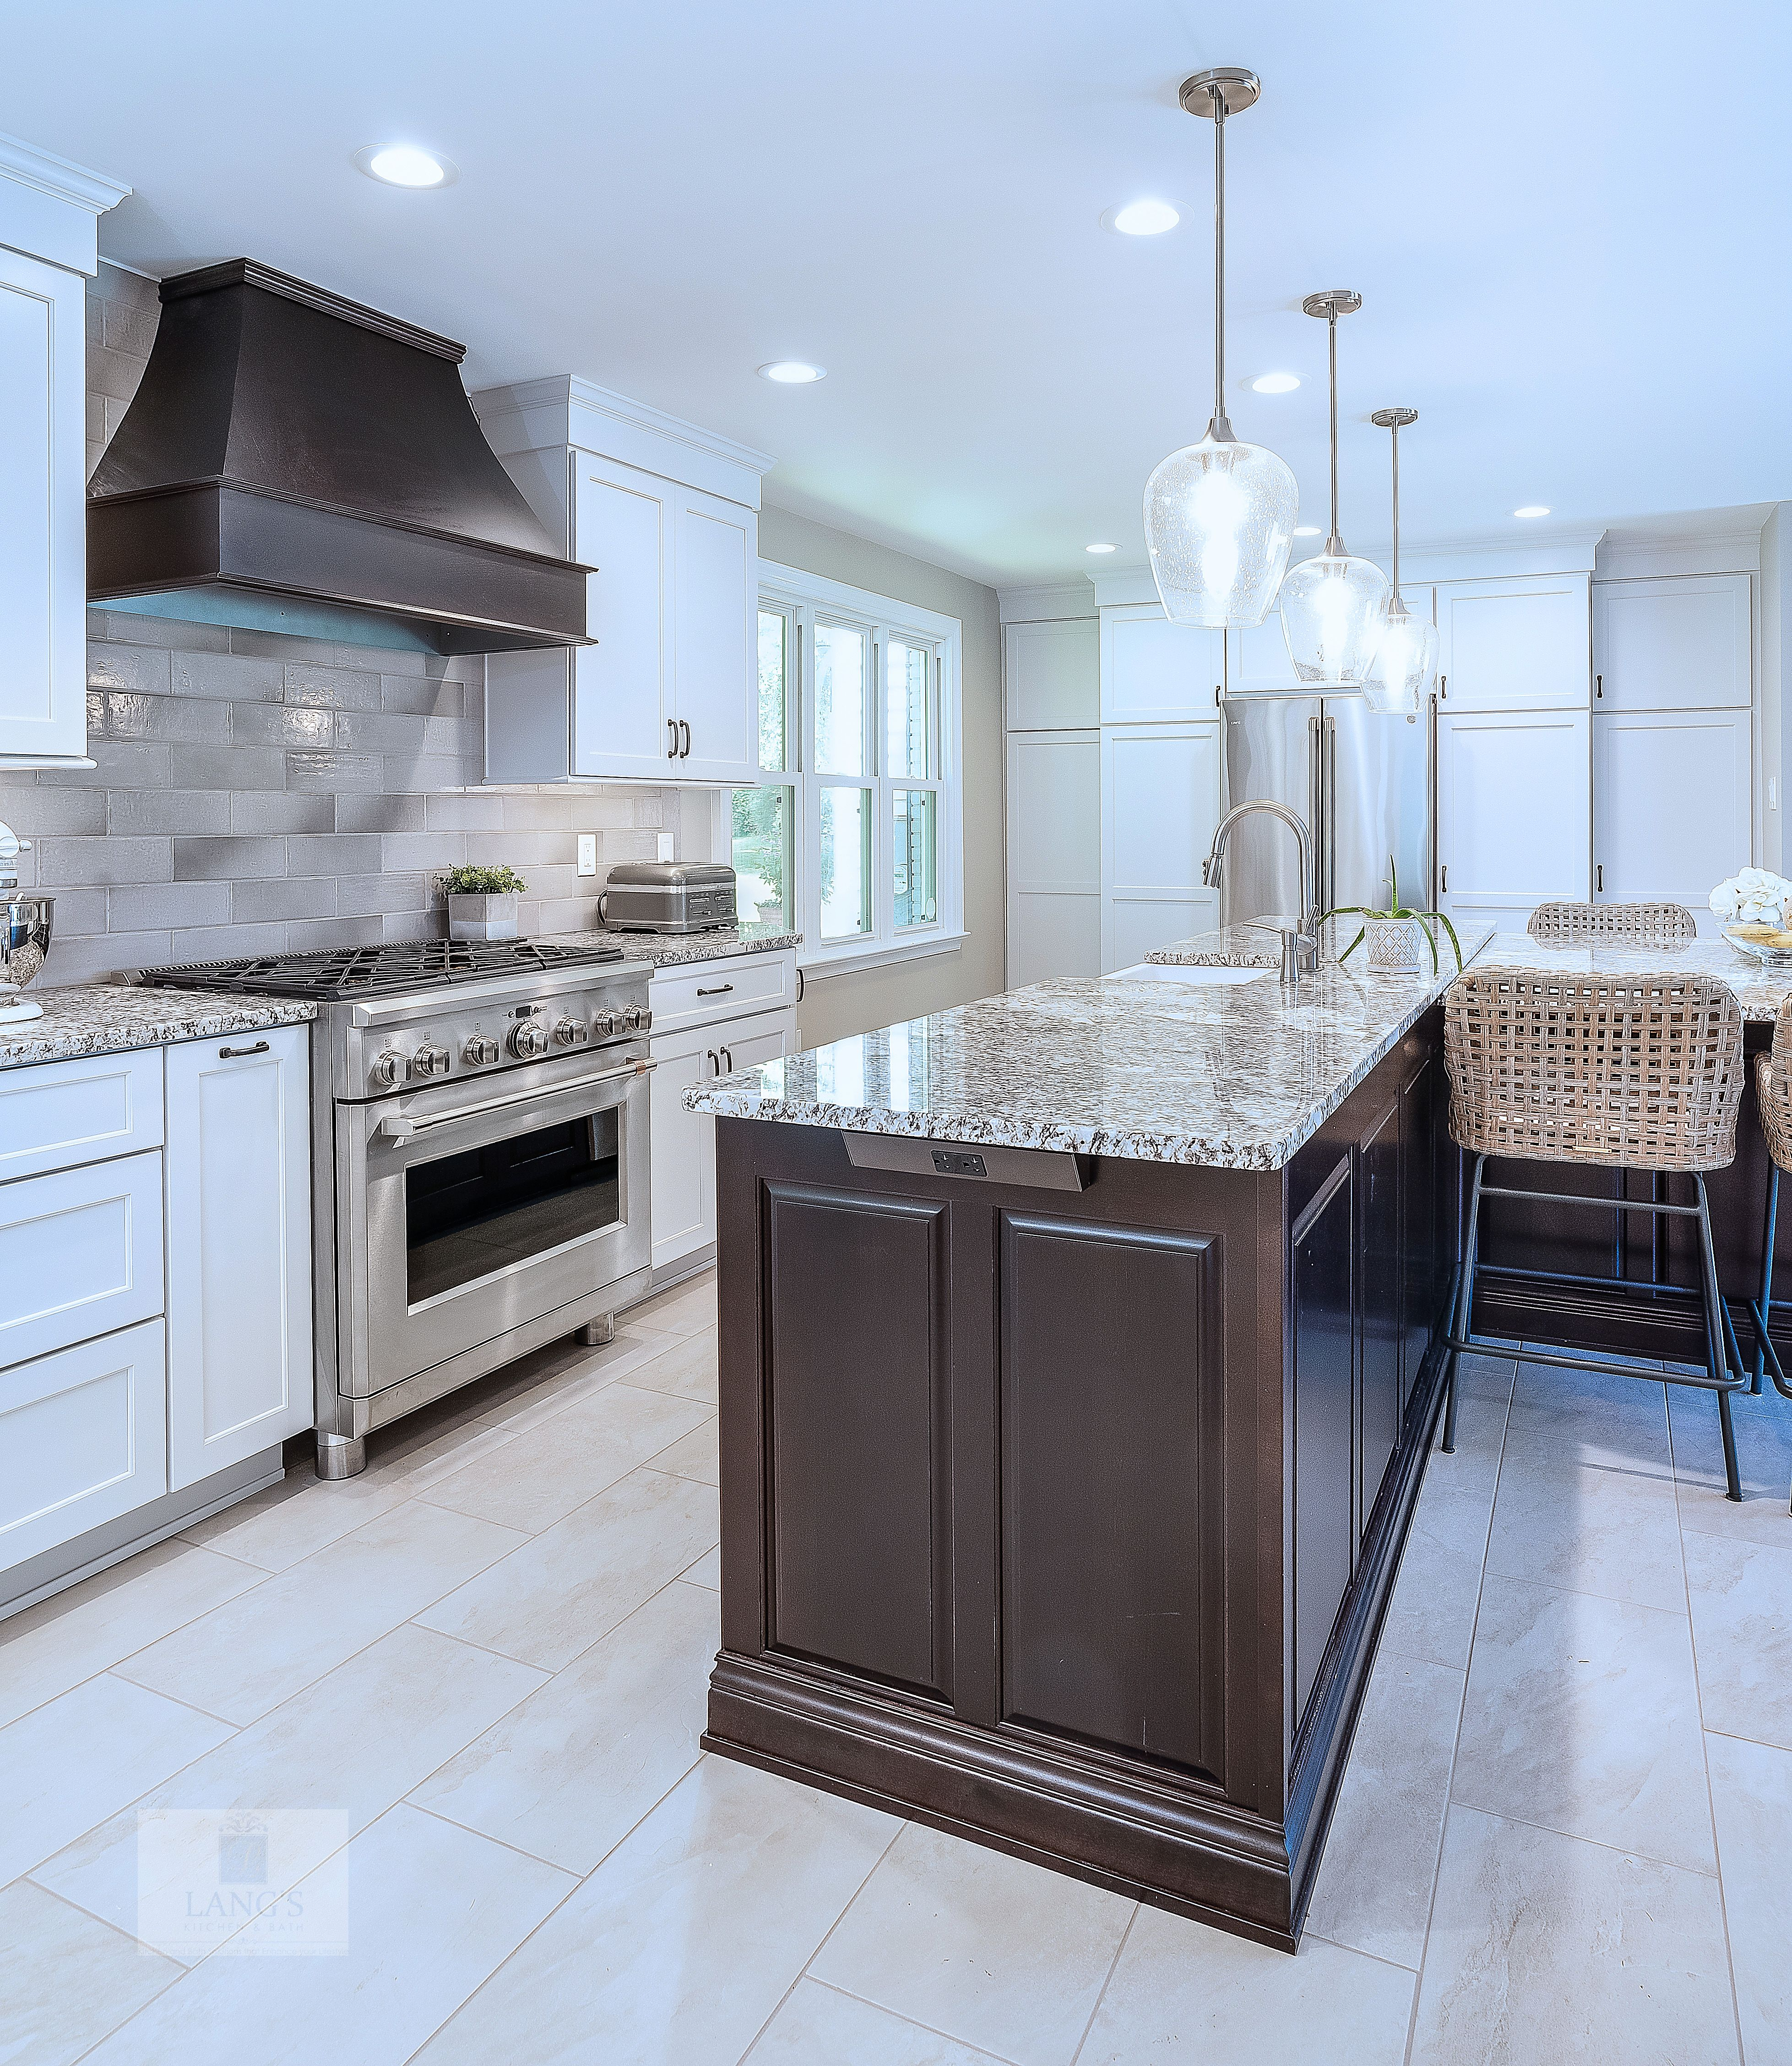 At The Heart Of This New Hope Pa Kitchen Design Is A Large T Shaped Island With Koch Cabinetry In A Dark Kitchen Design Kitchen Bath Design Eclectic Kitchen